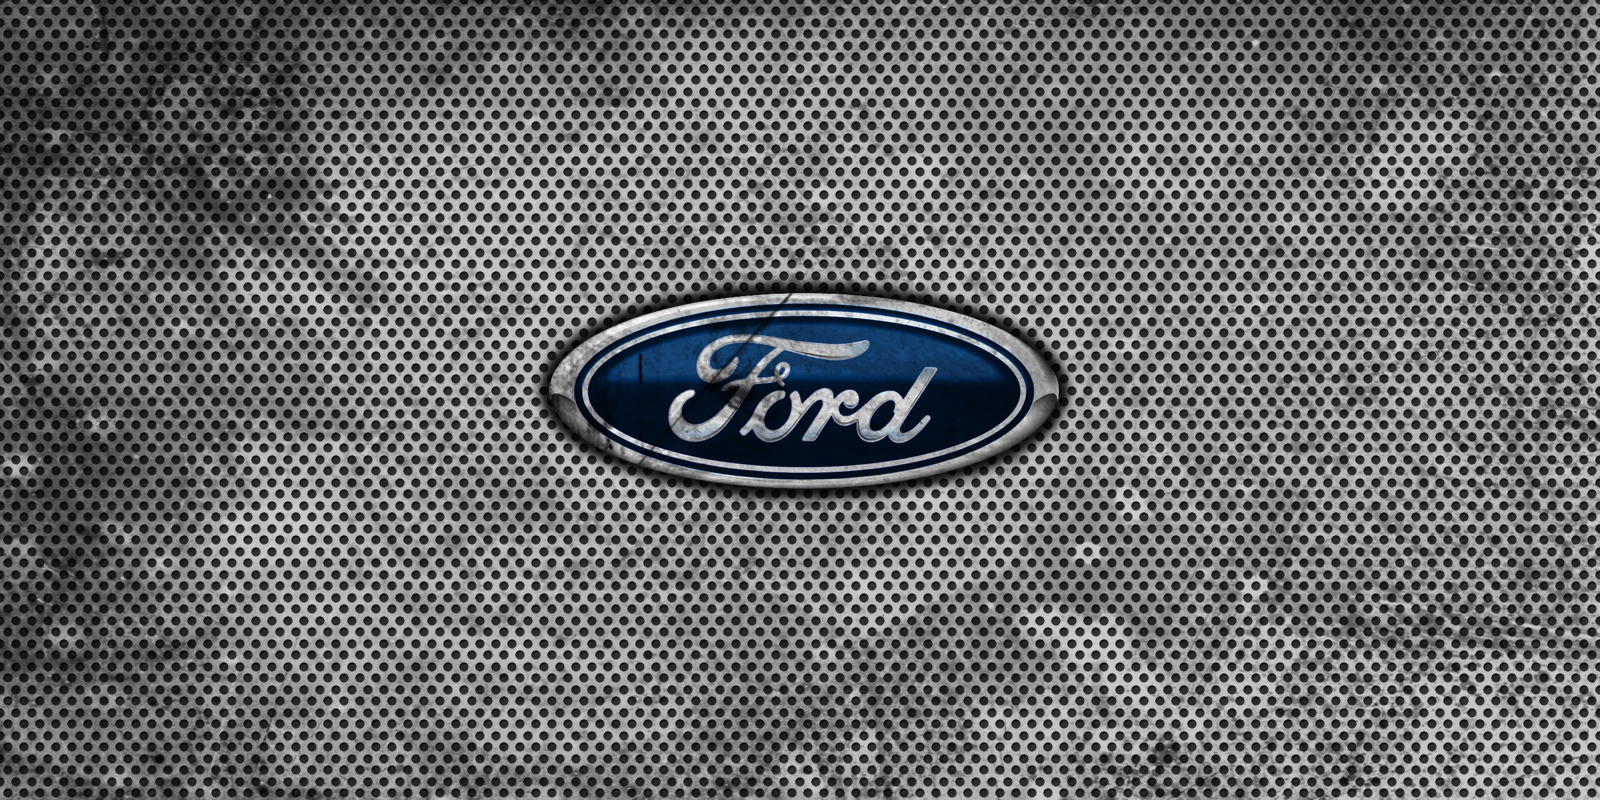 Ford Logo, Ford Car Symbol Meaning and History | Car Brand Names.com